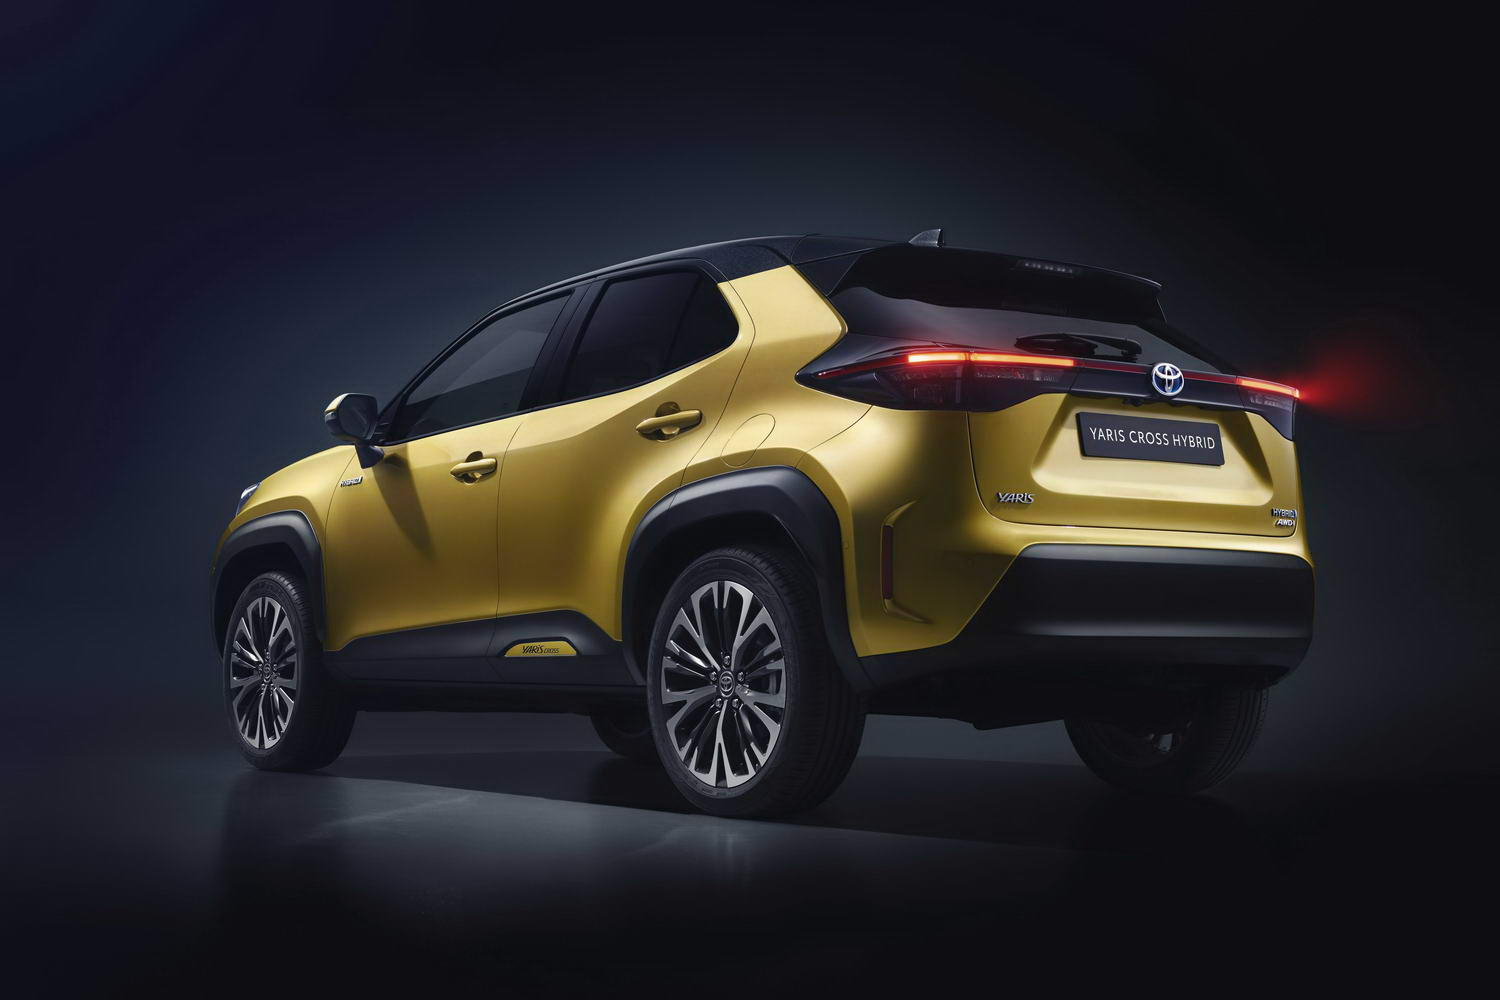 Car News | 2021 Toyota Yaris Cross image gallery | CompleteCar.ie